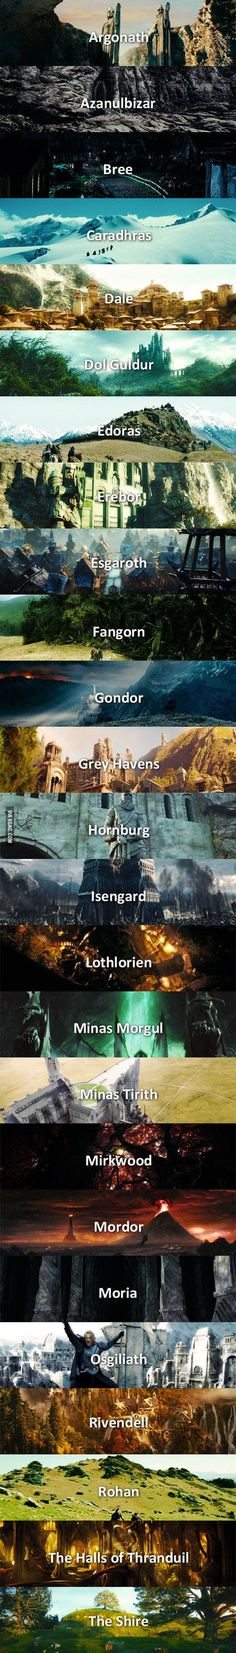 """""""Where there's life there's hope. Tolkien, The Hobbit Jrr Tolkien, Narnia, Gandalf, Aragorn, Midle Earth, O Hobbit, Hobbit Art, Into The West, The Middle"""